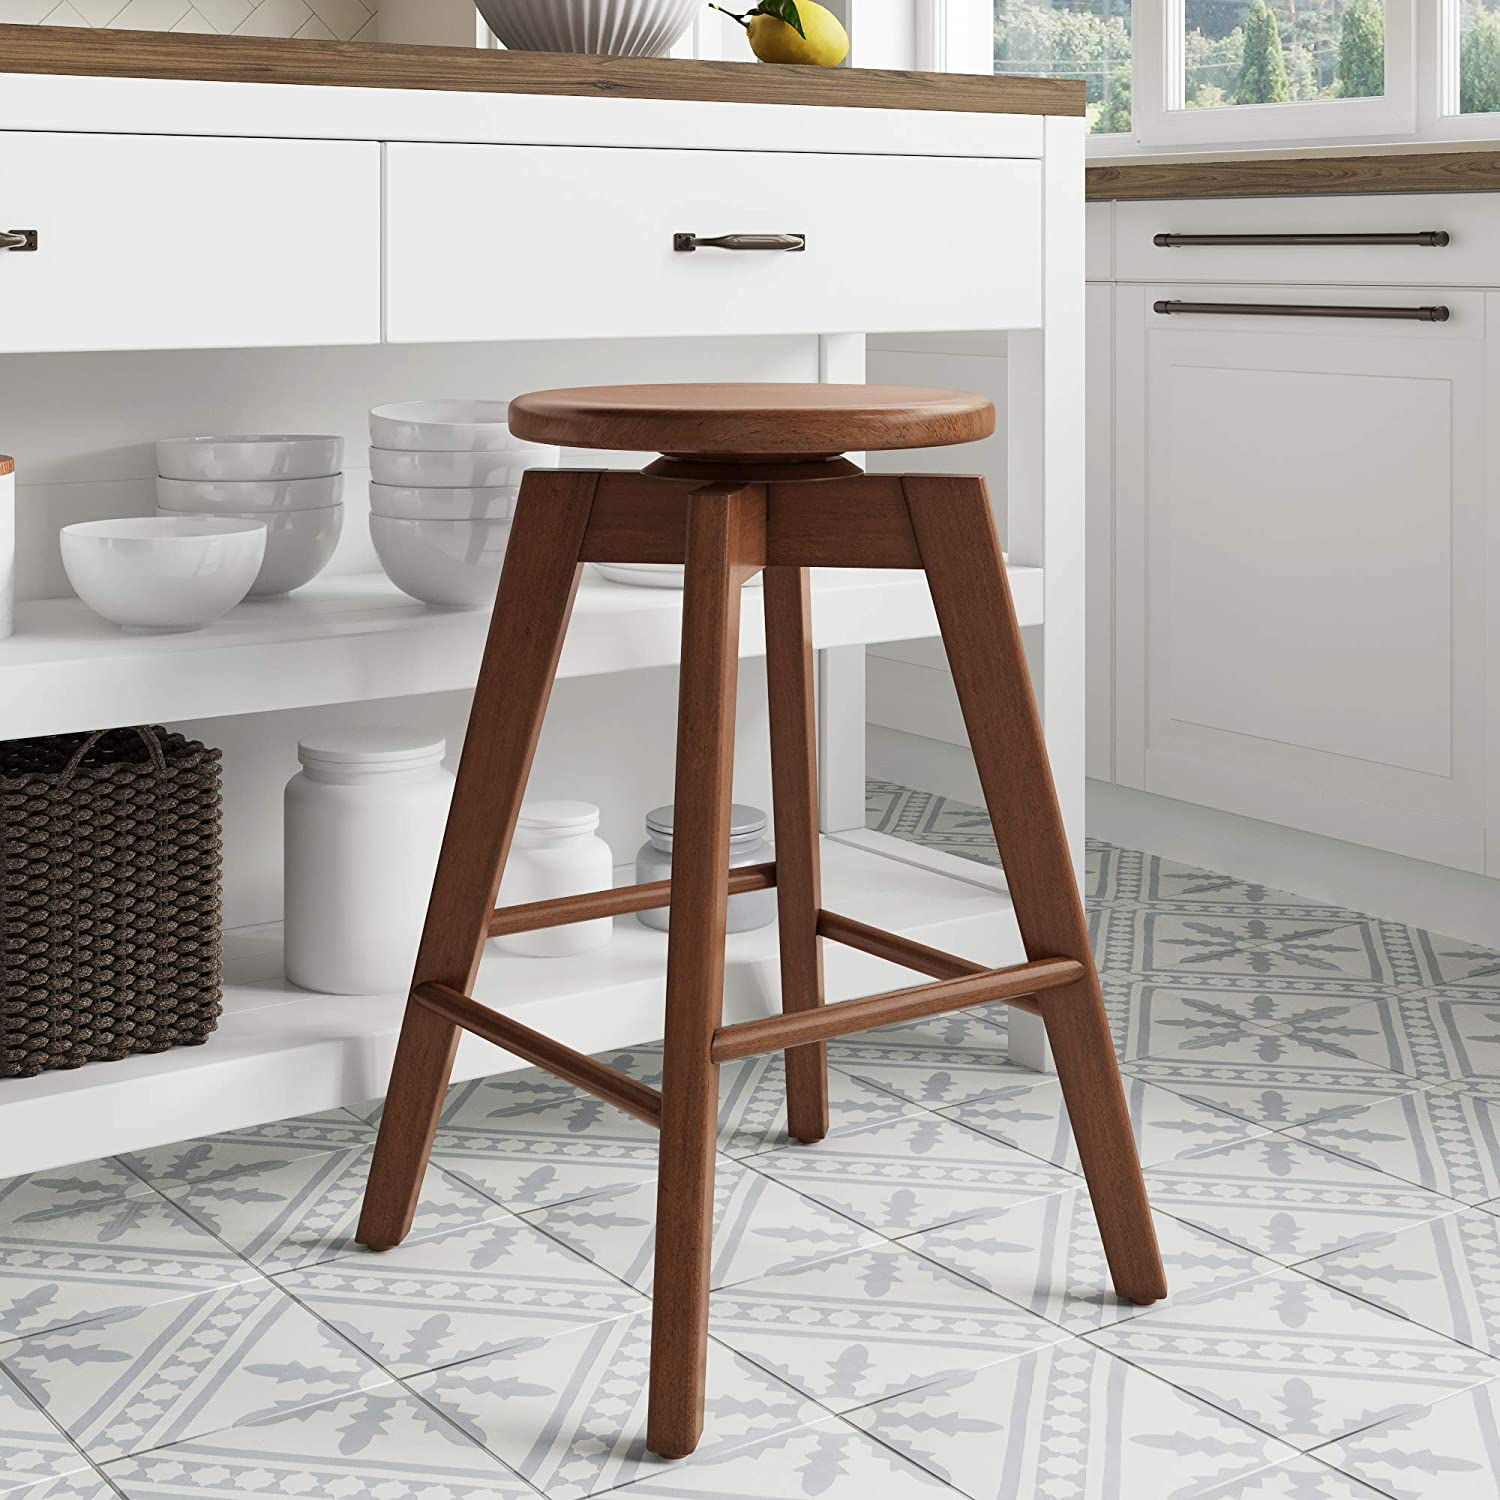 Nathan James Amalia Backless Kitchen Counter Height Bar Stool, Solid Wood with 360 Swivel Seat, Antique Coffee/Brown